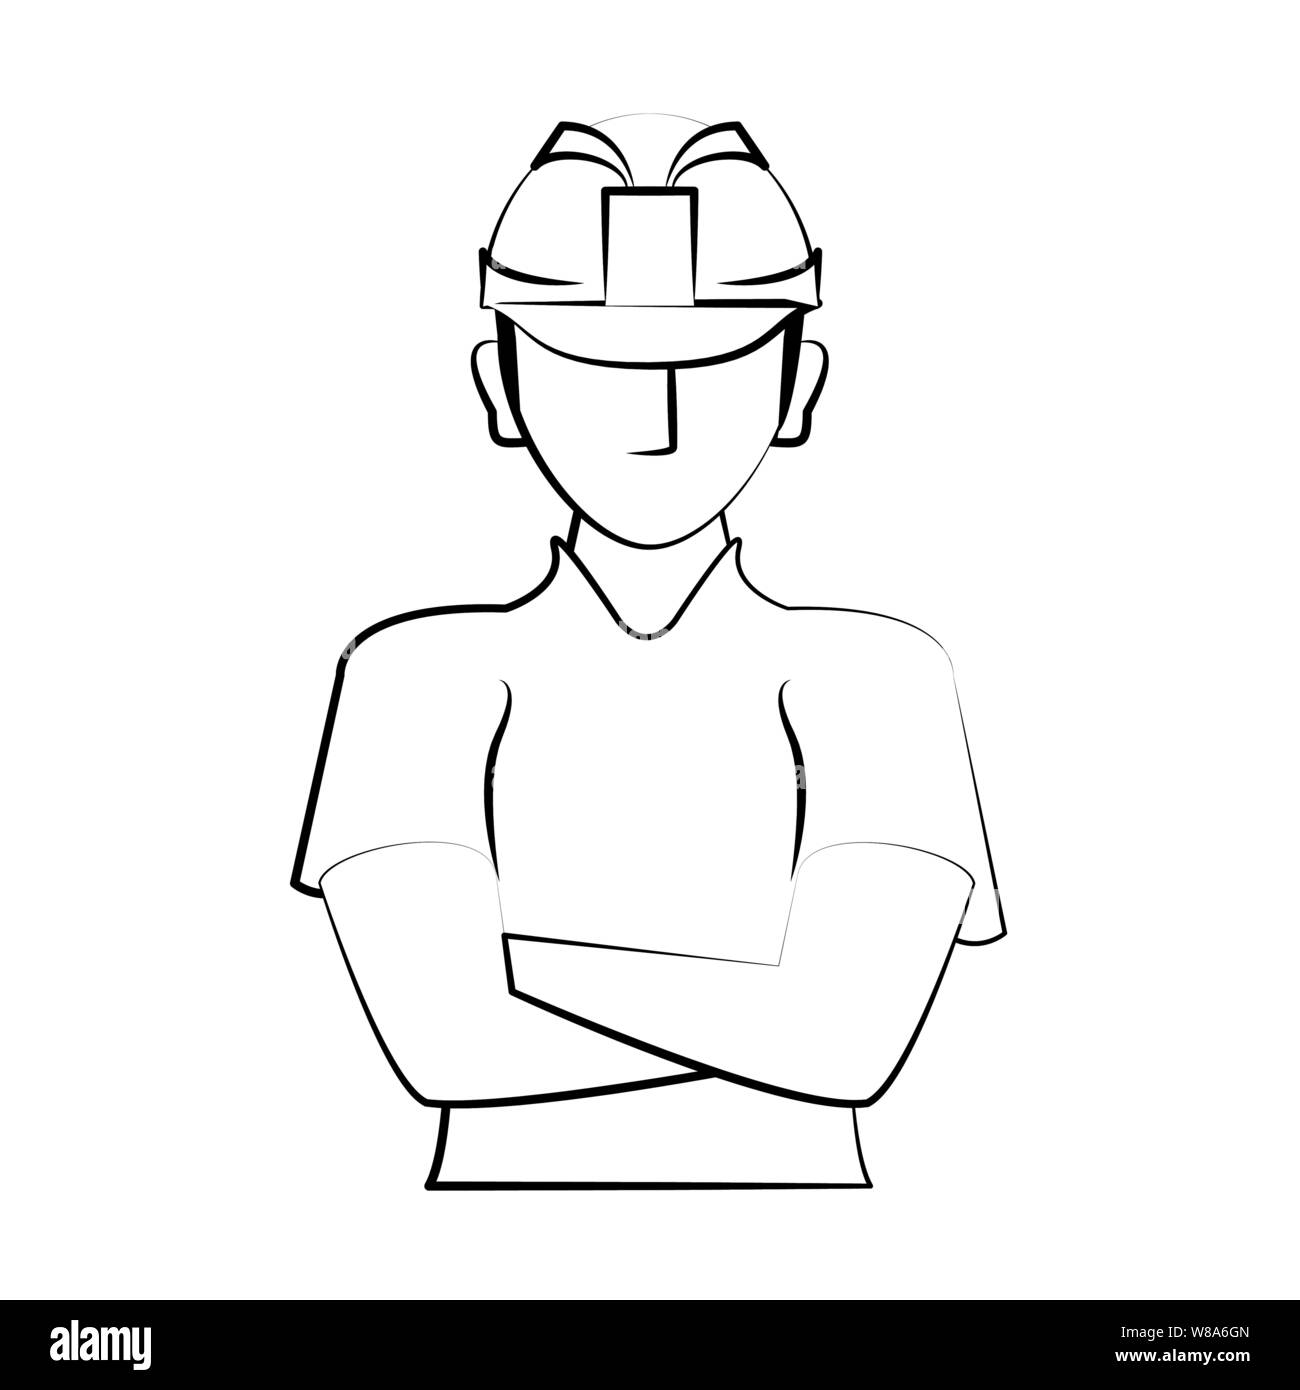 engineering construction factory industry cartoon drawing in black and white Stock Vector